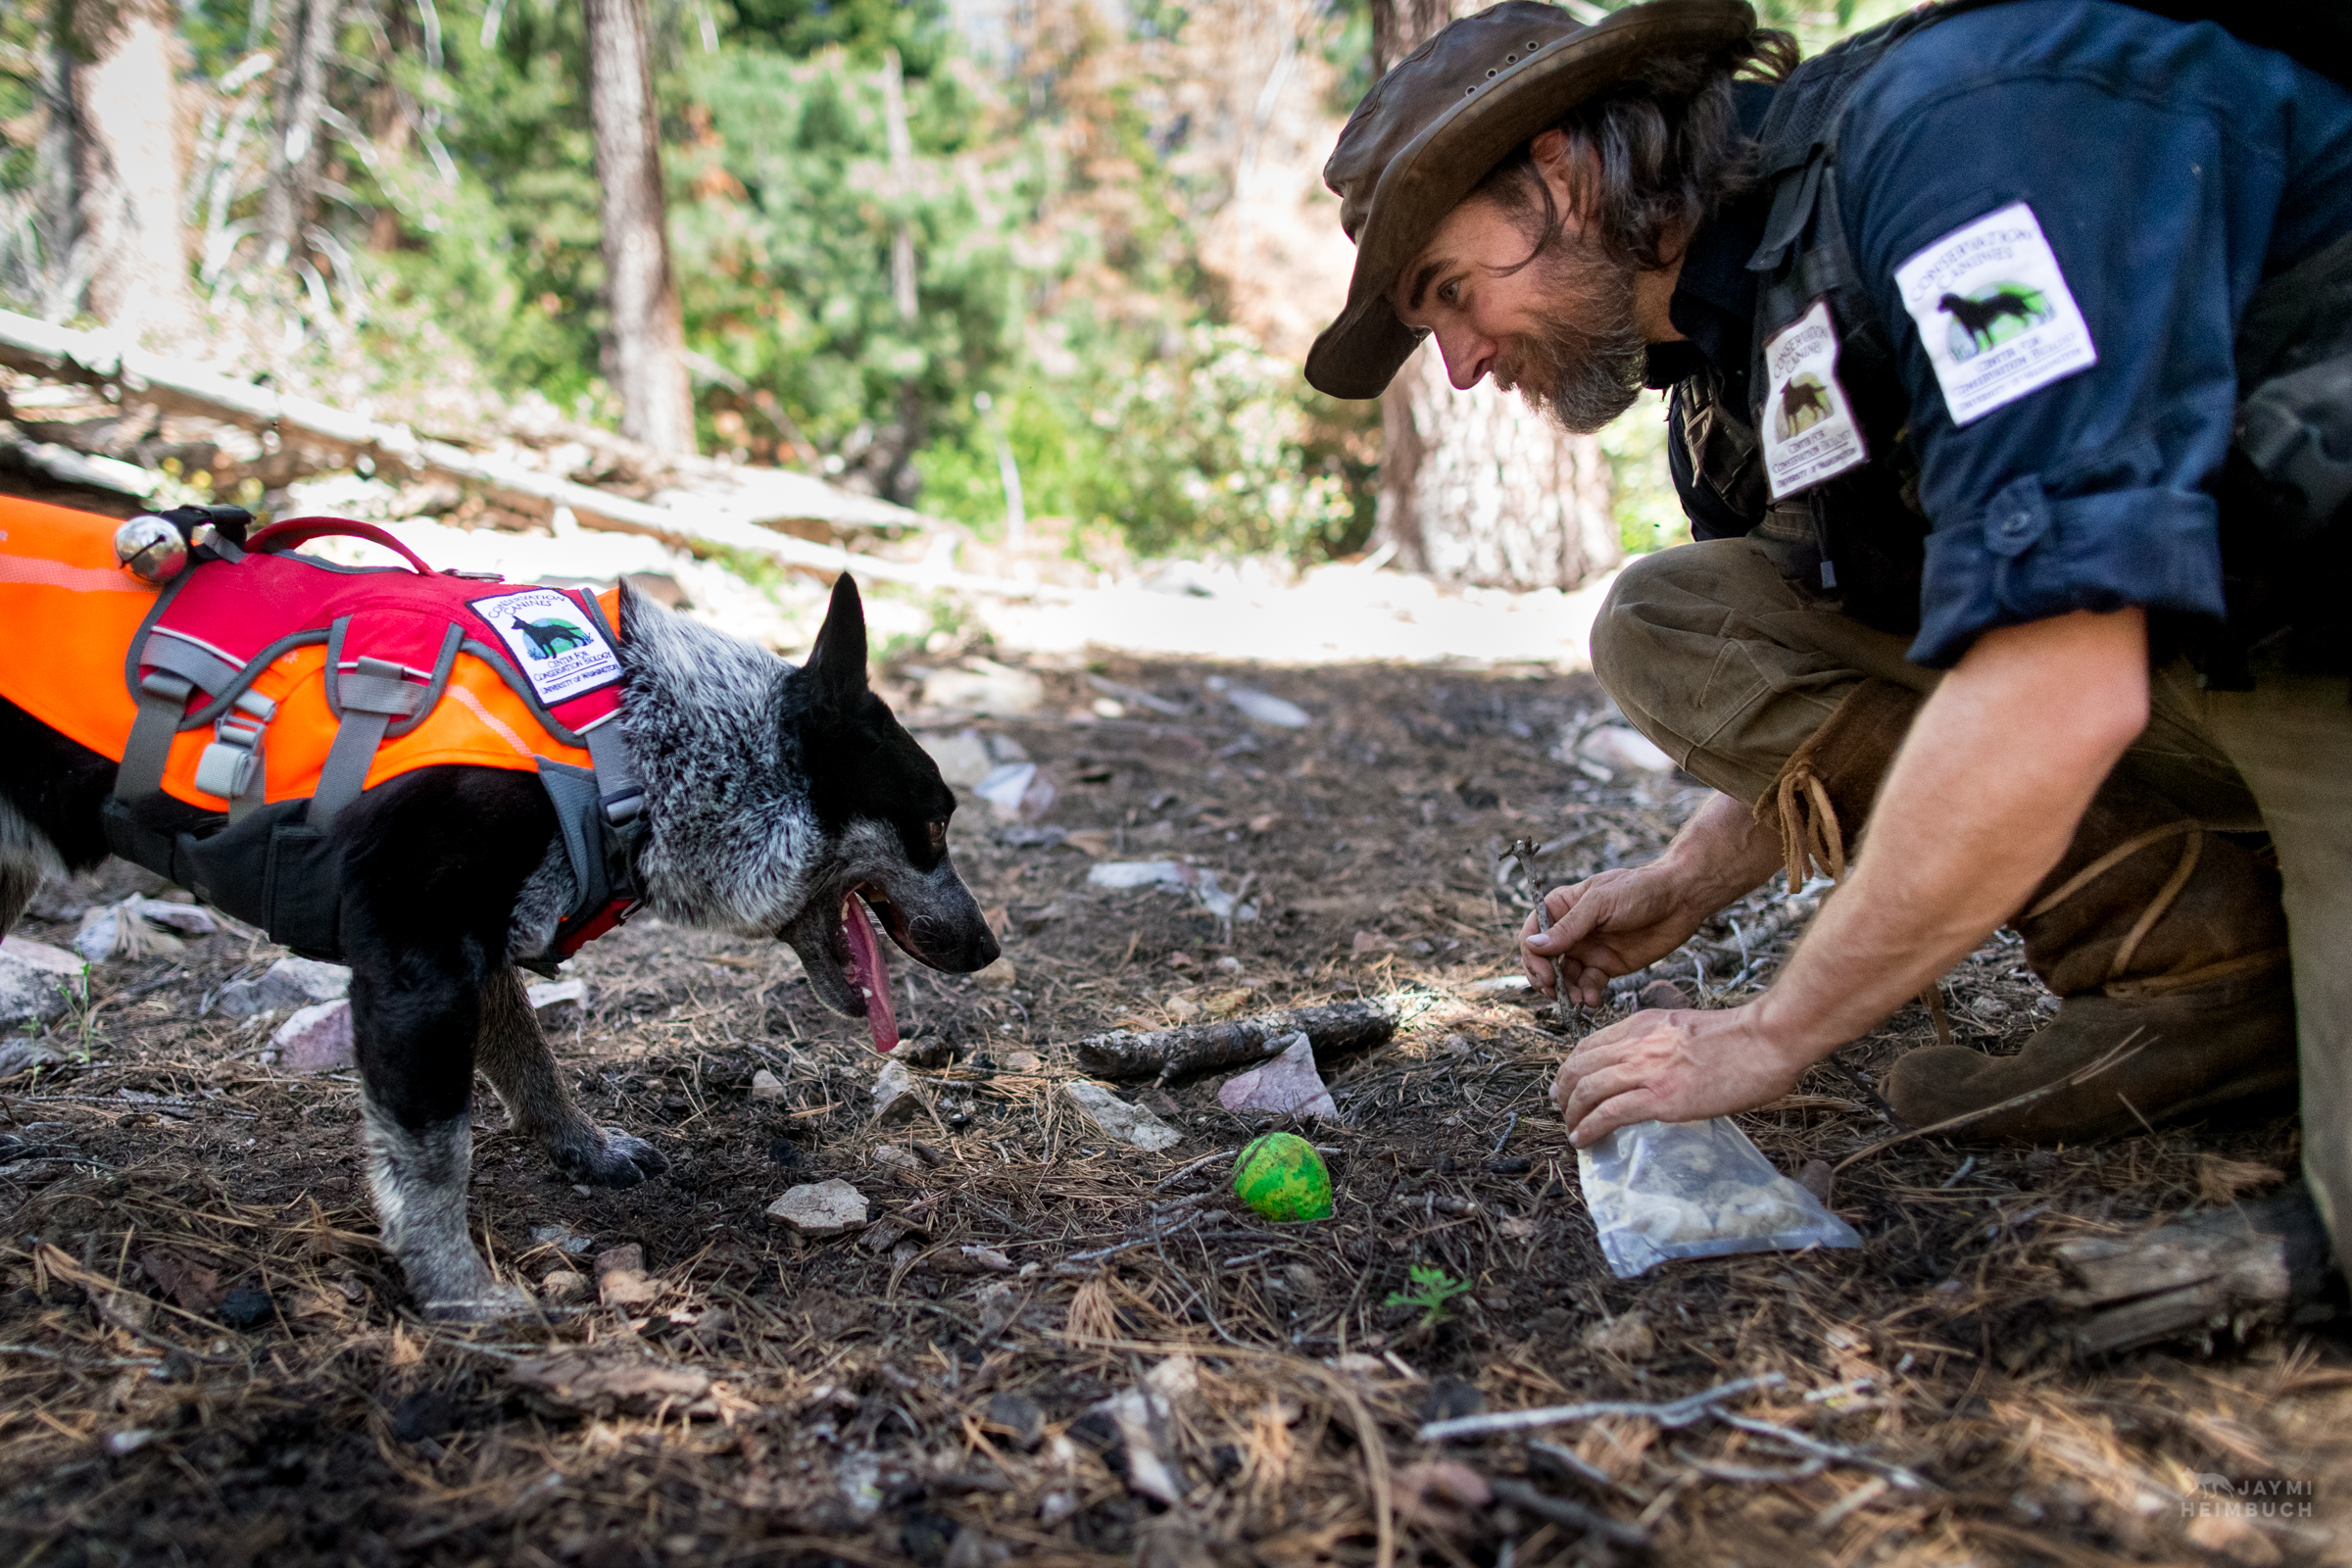 Field technician Heath Smith collects a cougar scat found by scent detection dog (canis lupus familiaris) Pips in California's Sierra Nevada mountains. The team is part of University of Washington Center for Conservation Biology's Conservation Canines program.